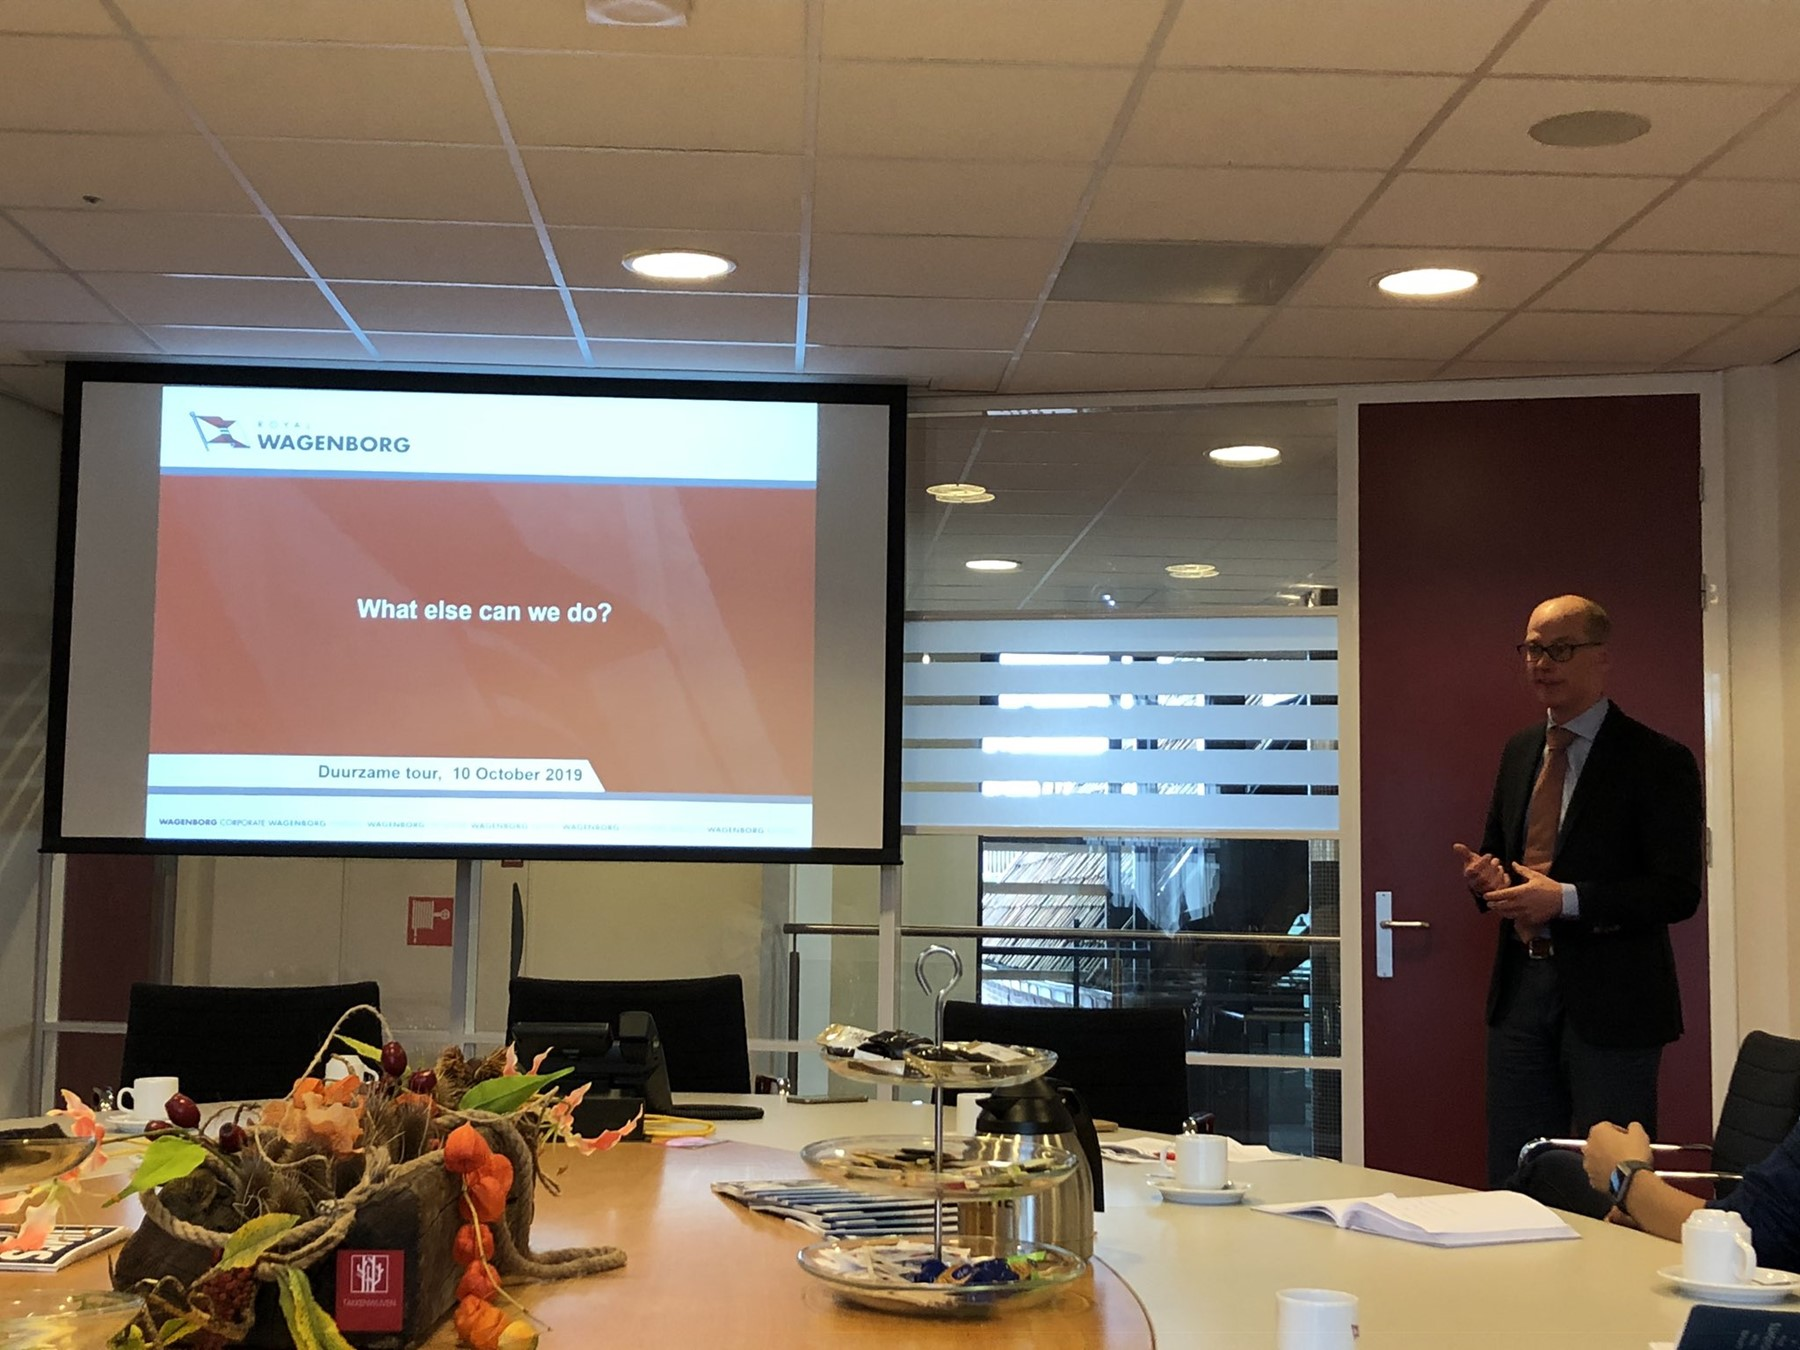 Fleet development Manager Wieger Duursma explained about the successful focus on ship efficiency and fuel reduction of Wagenborg.